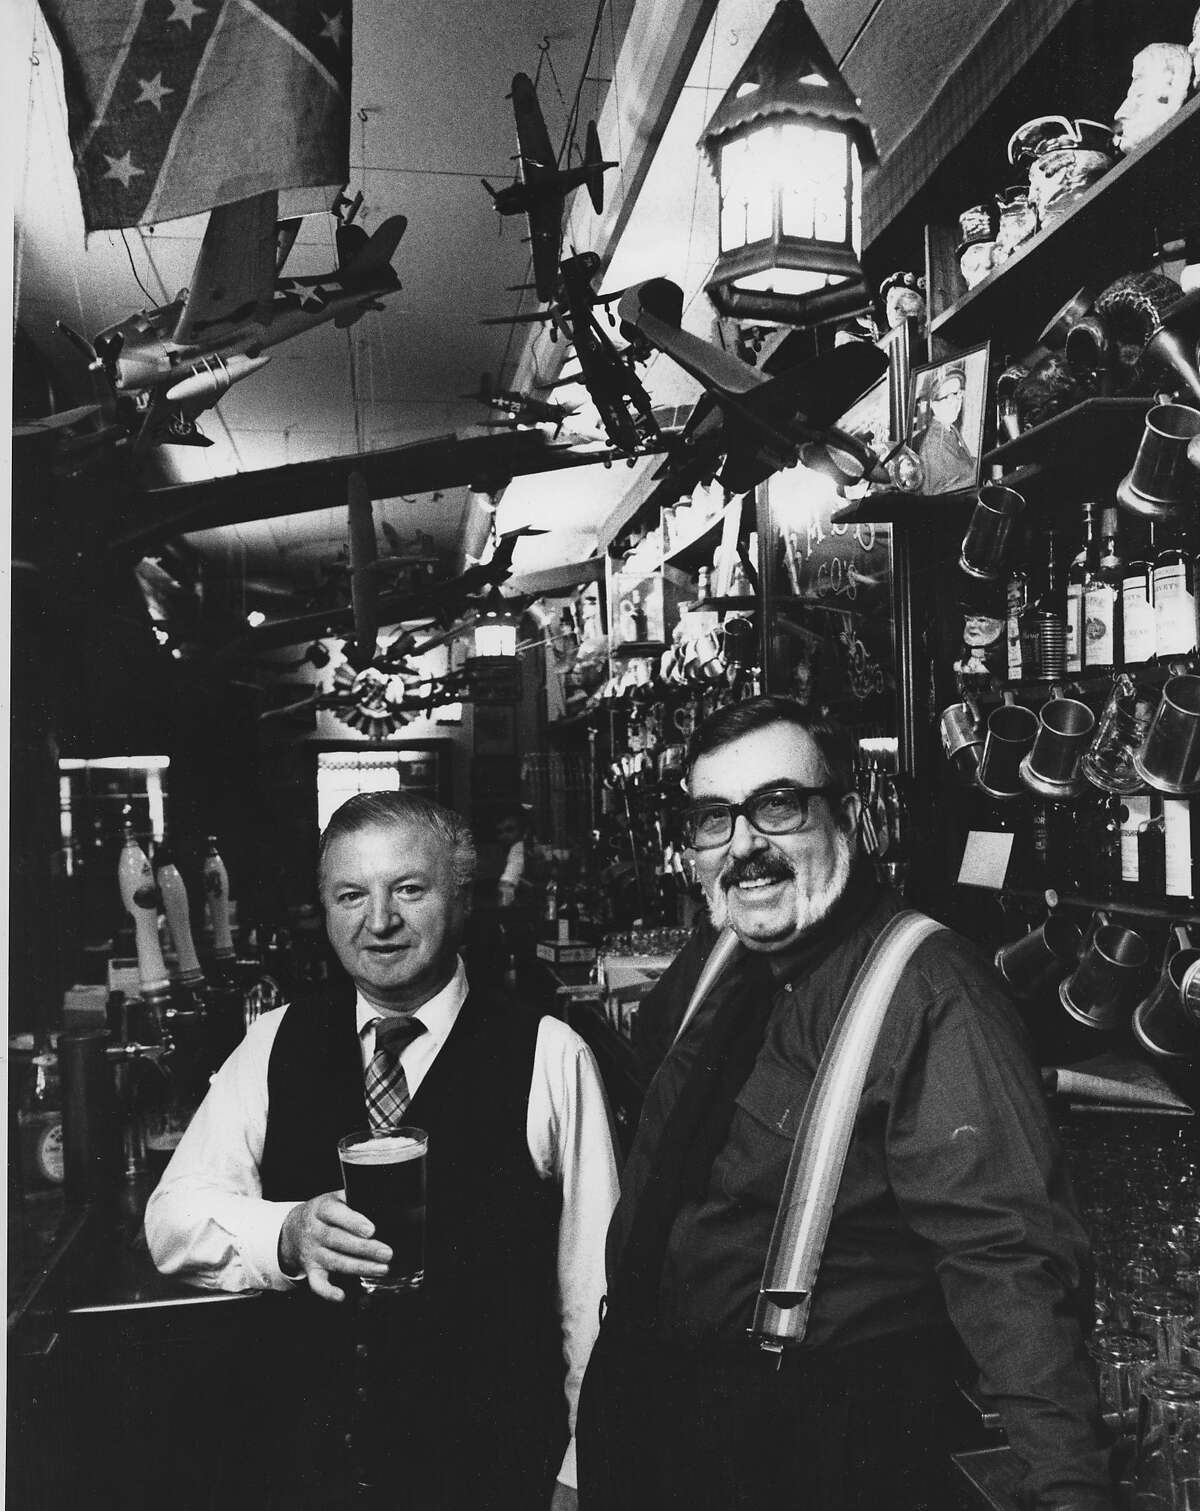 Edinburgh Castle Bar, 950 Geary St. in San Francisco Owners Douglas Kirk and Robert Johnson 09/26/1988